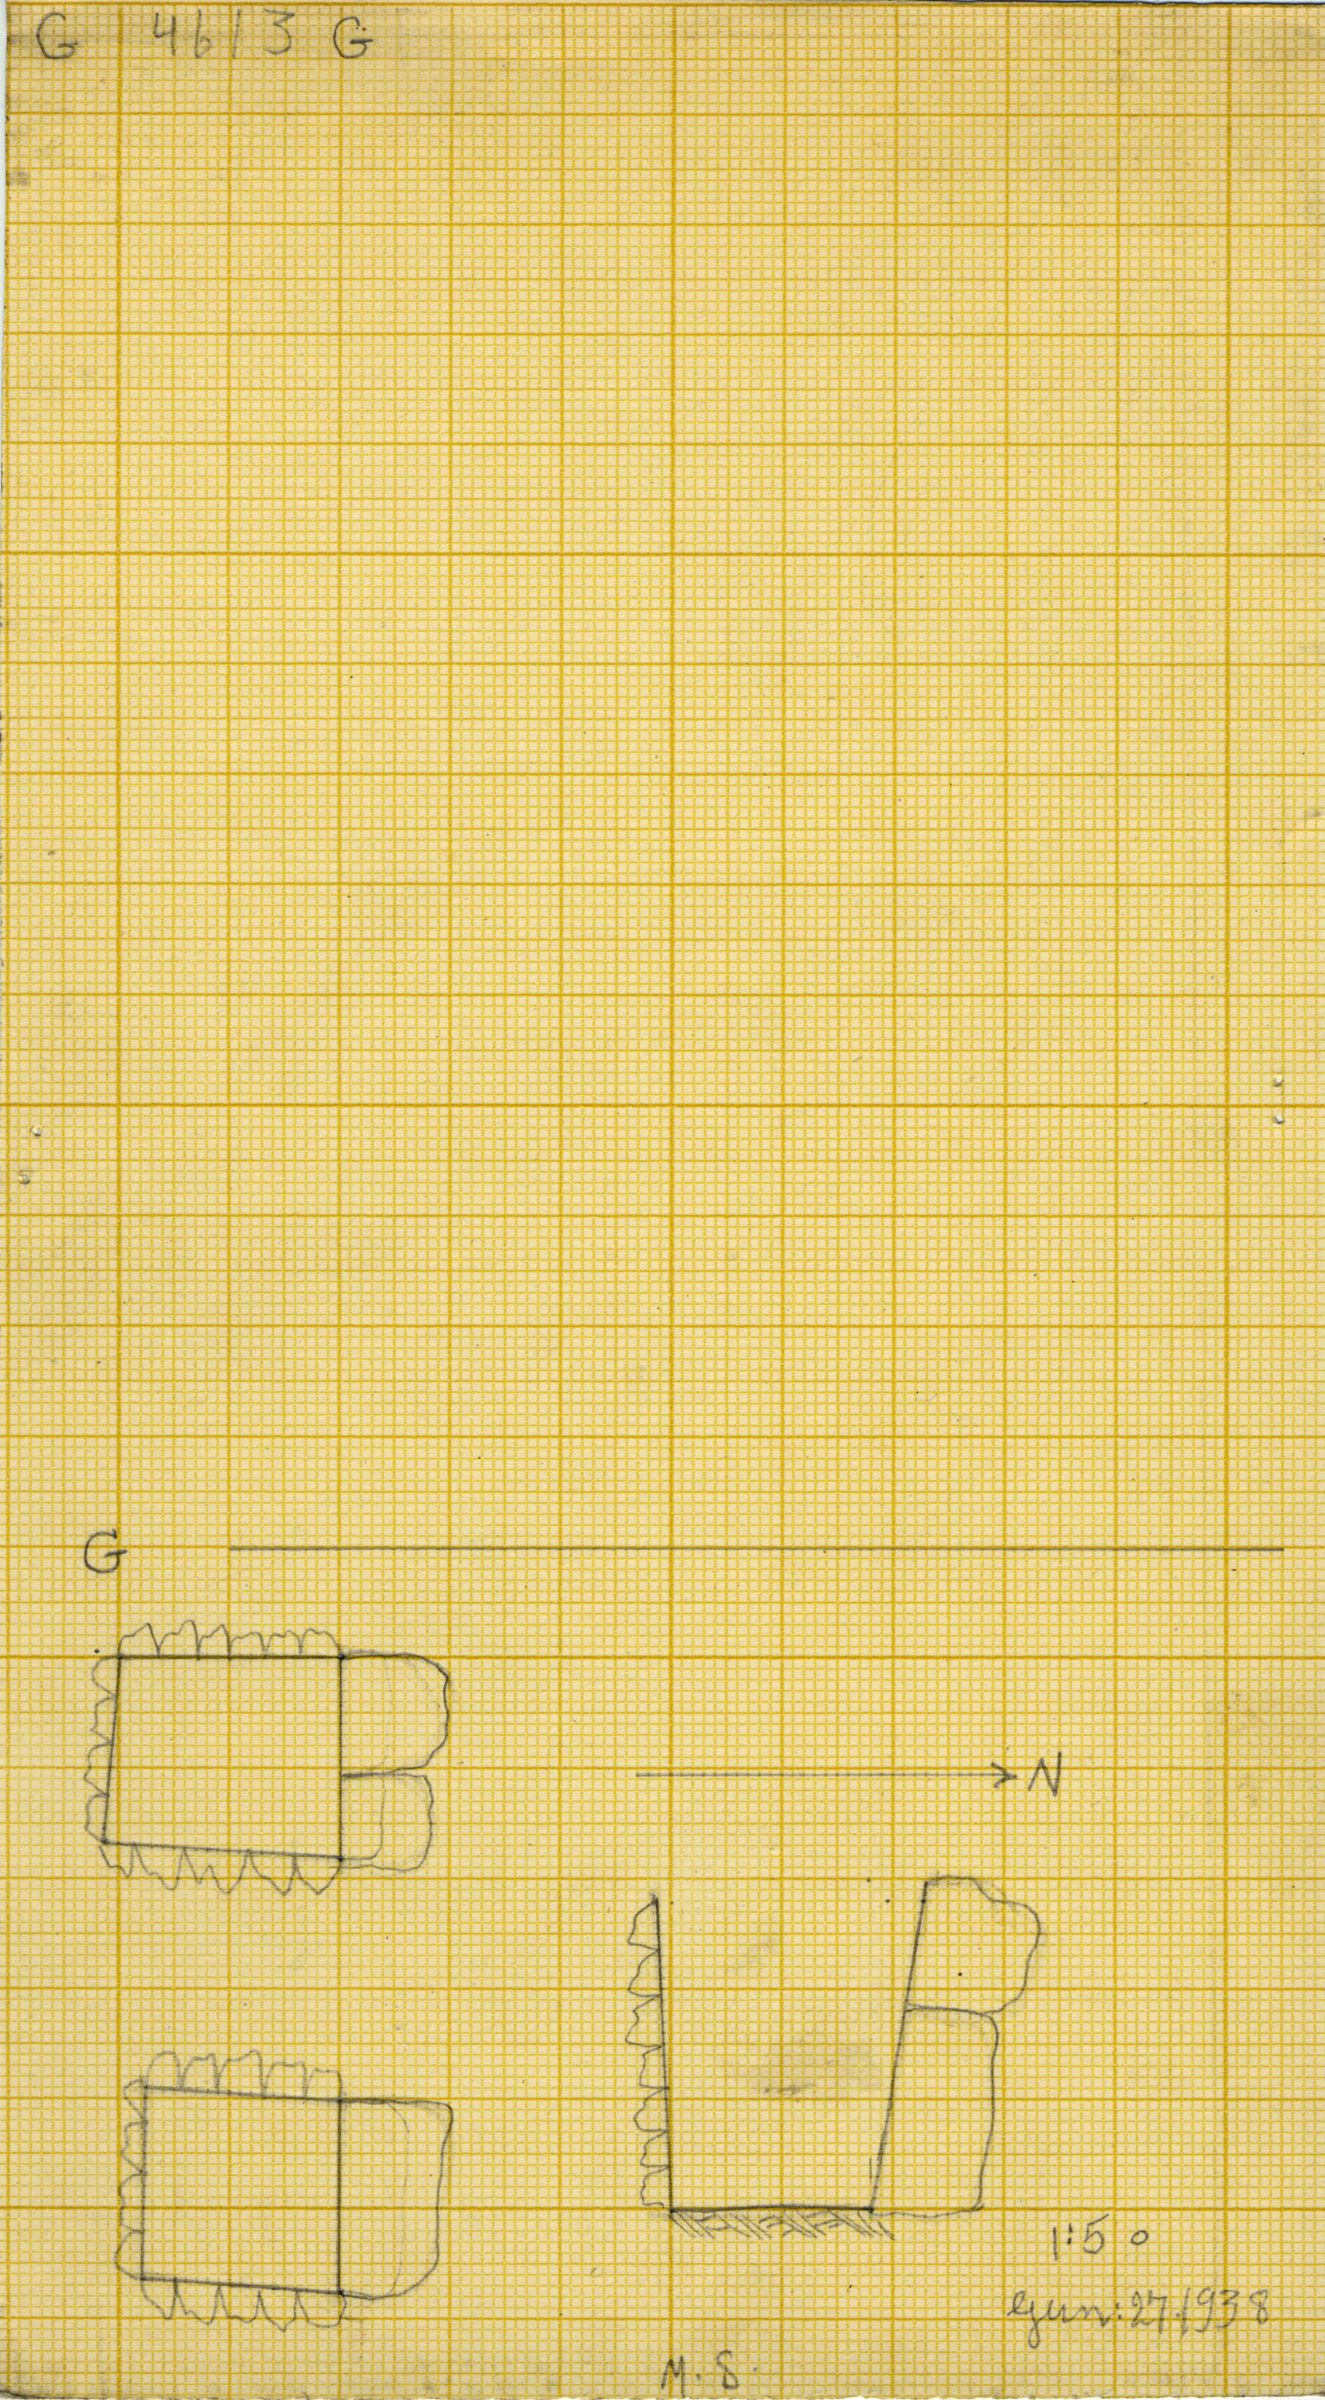 Maps and plans: G 4613, Shaft G